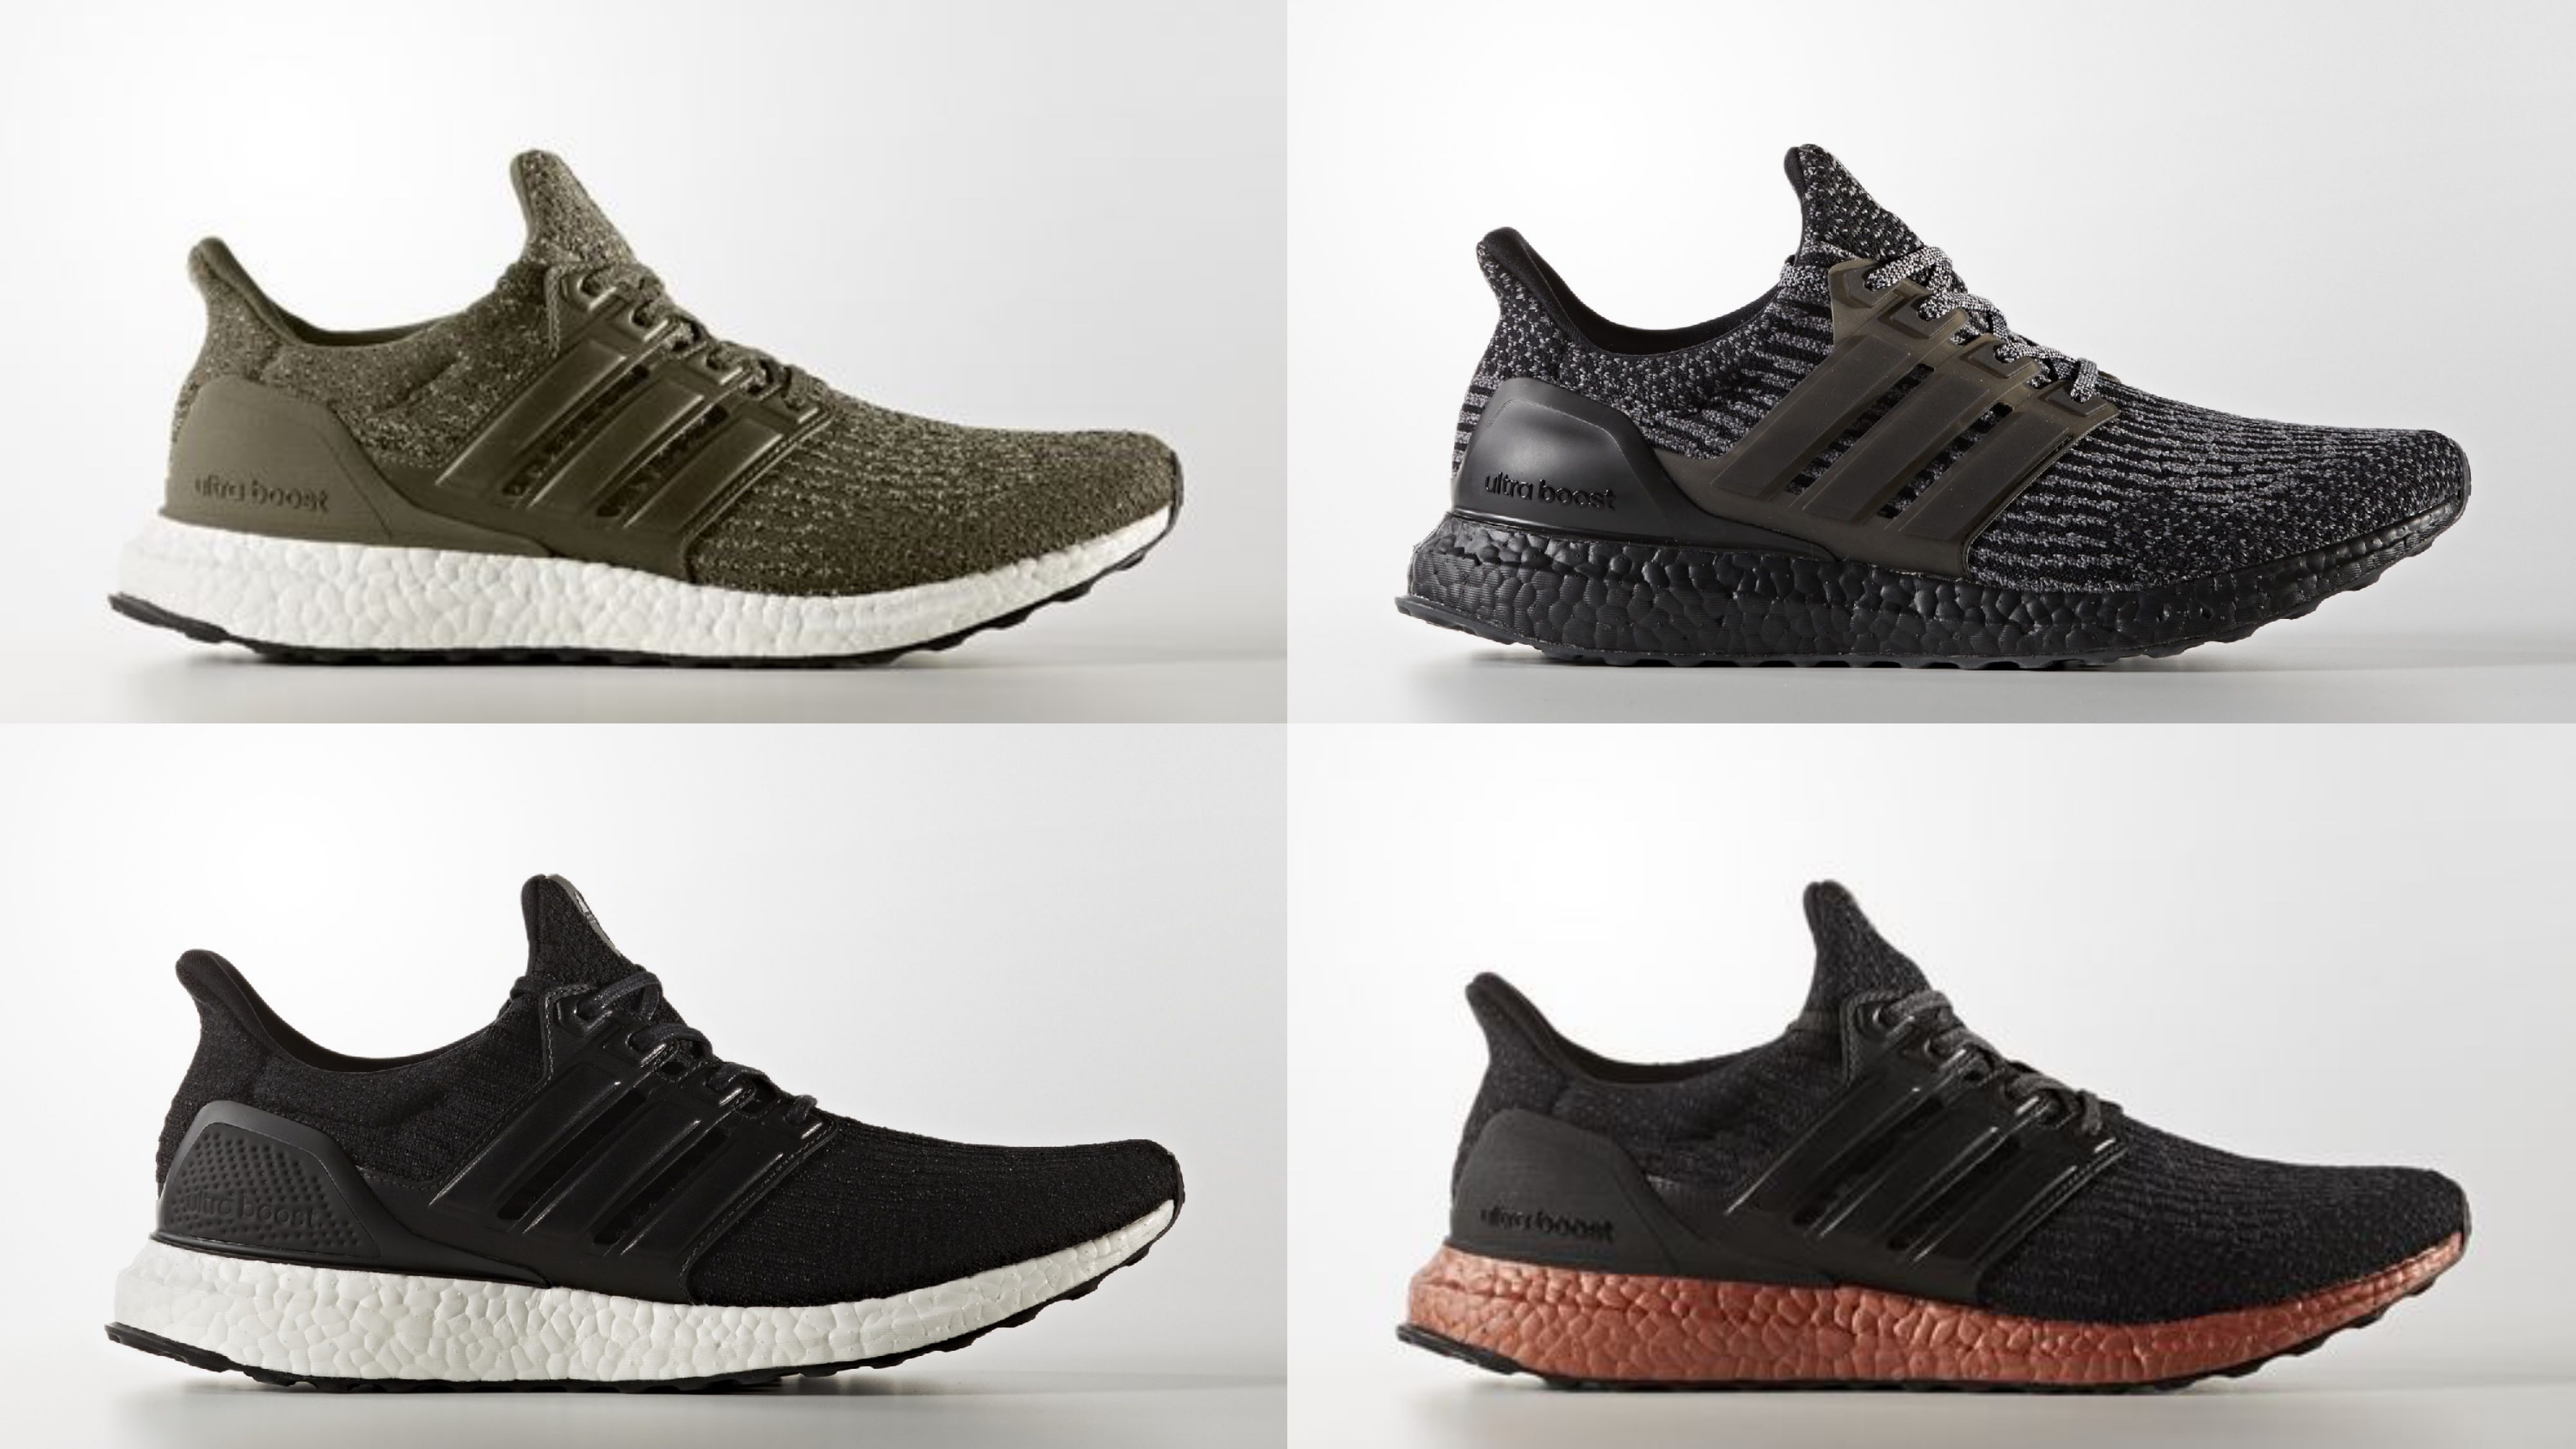 adidas ultra boost 3.0 new colorways